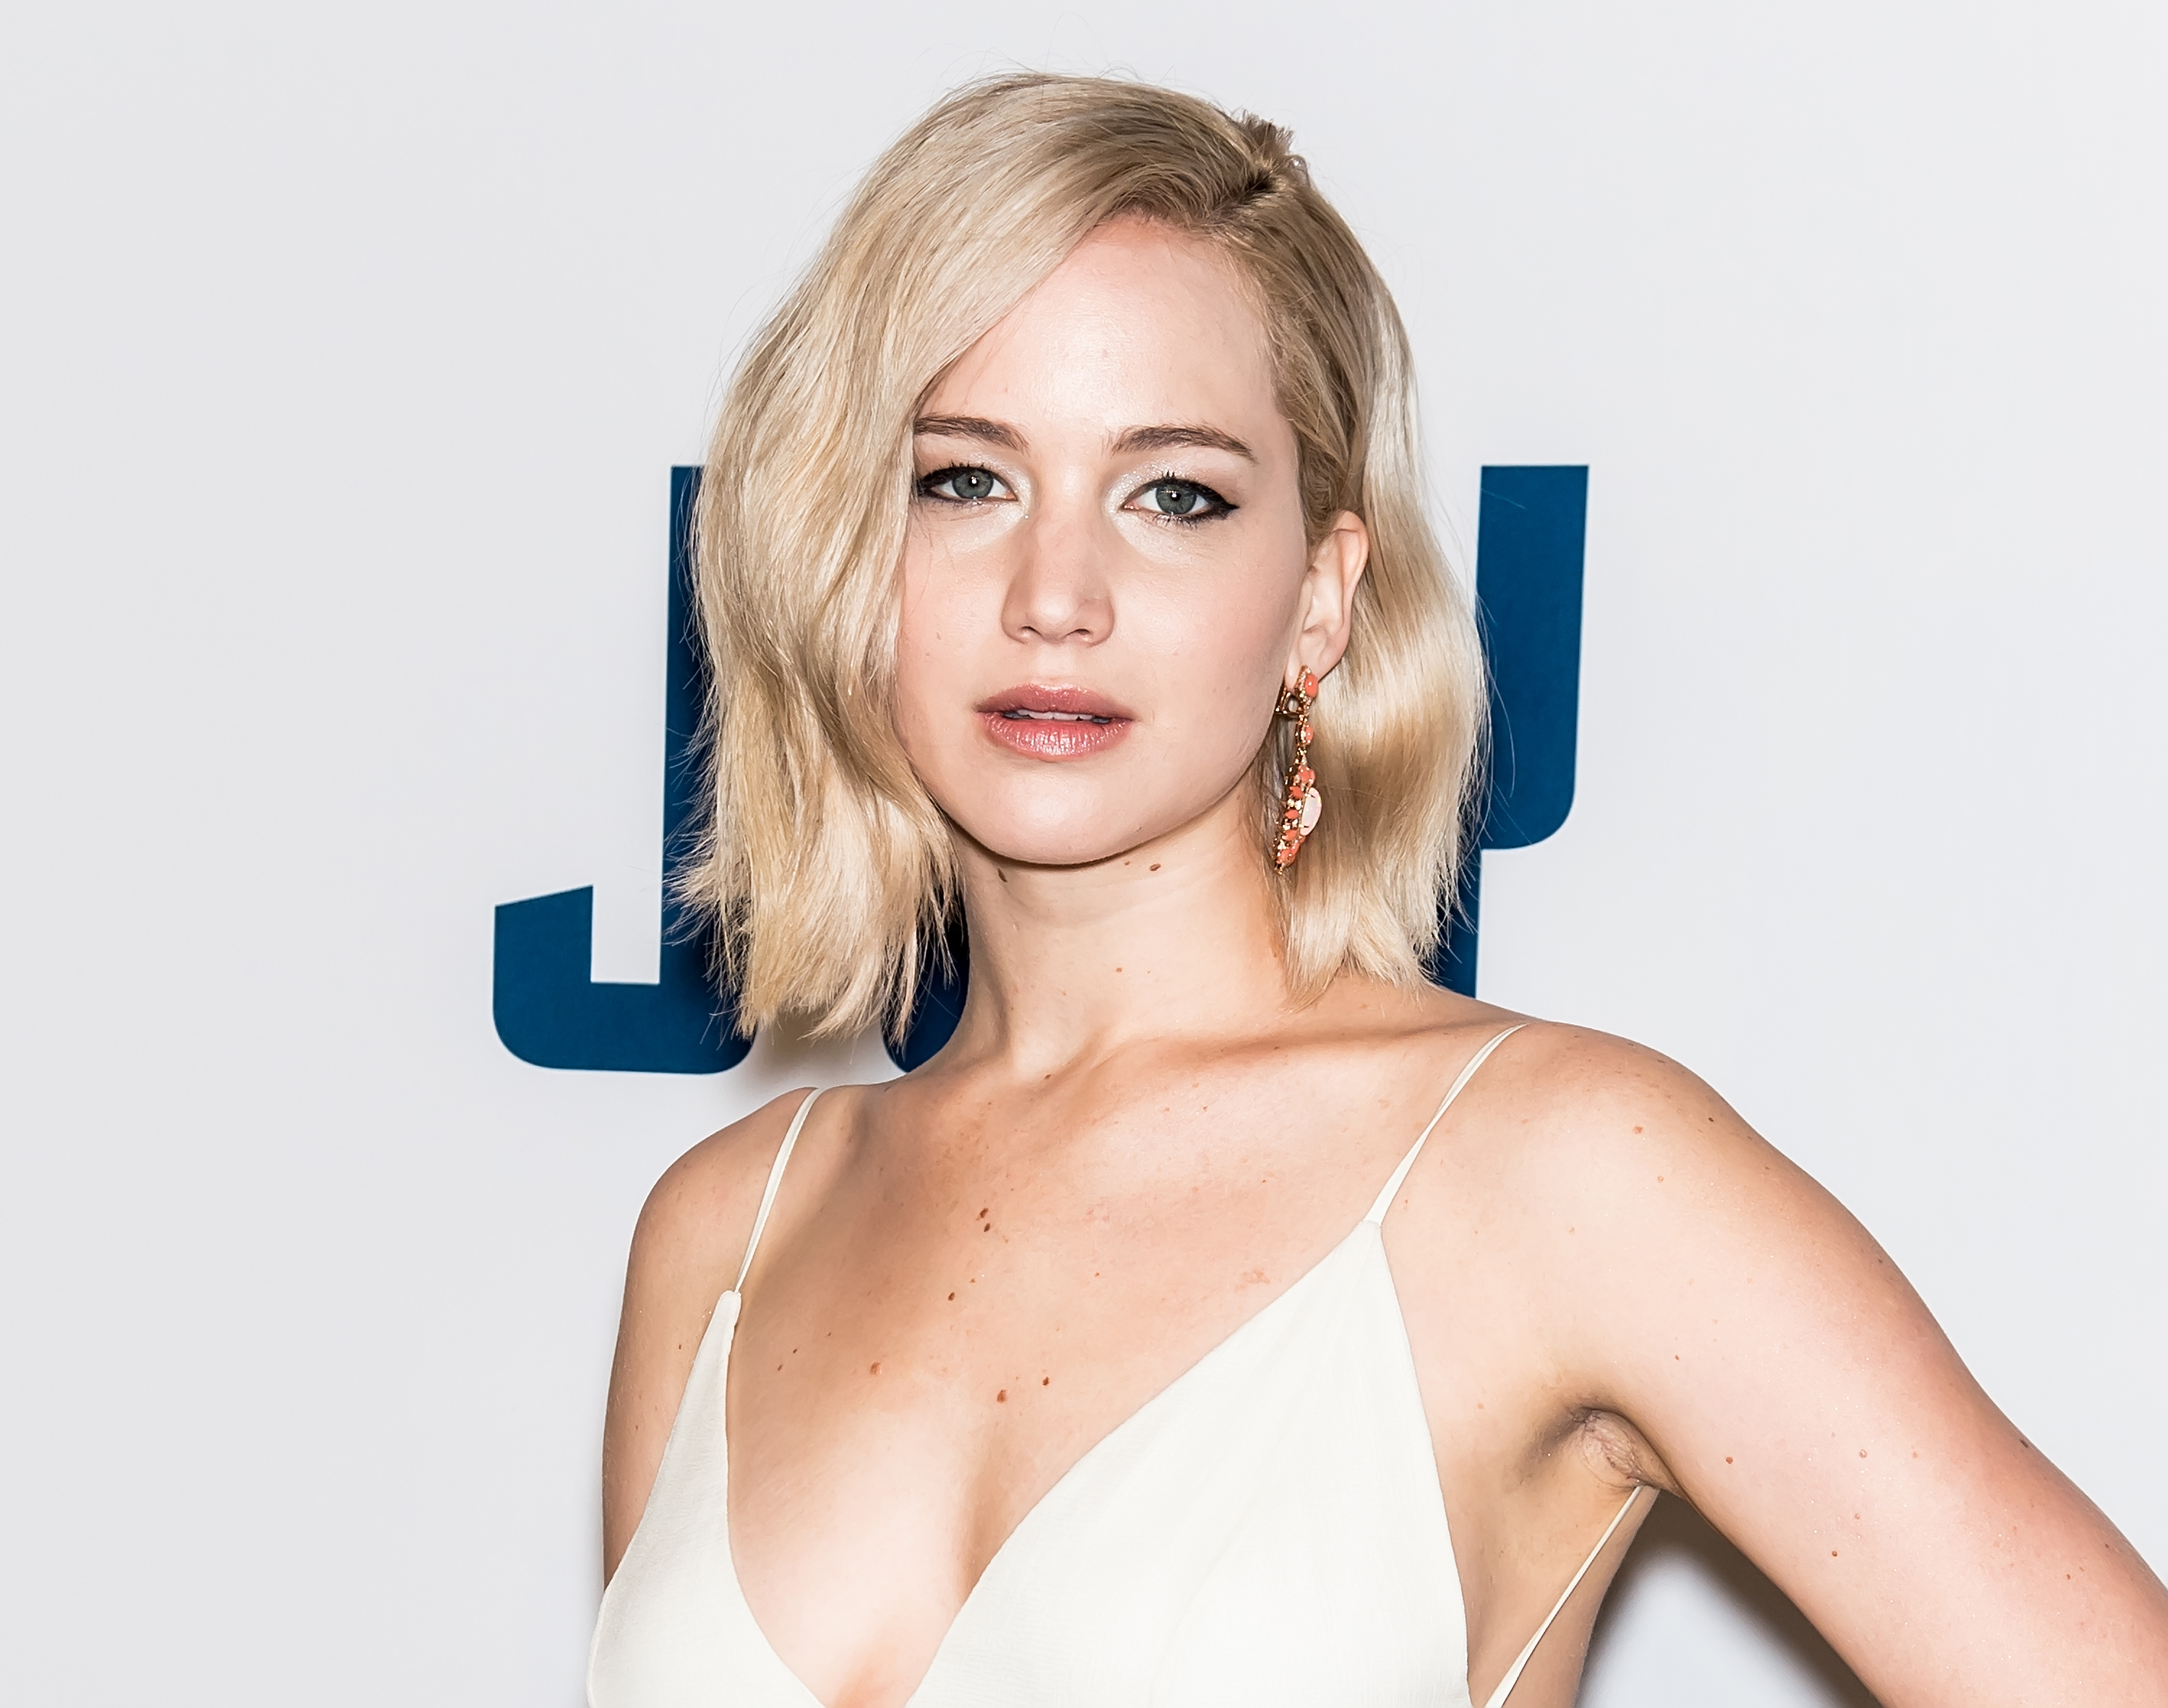 Actress Jennifer Lawrence attends the 'Joy' New York premiere at Ziegfeld Theater on December 13, 2015, in New York City.